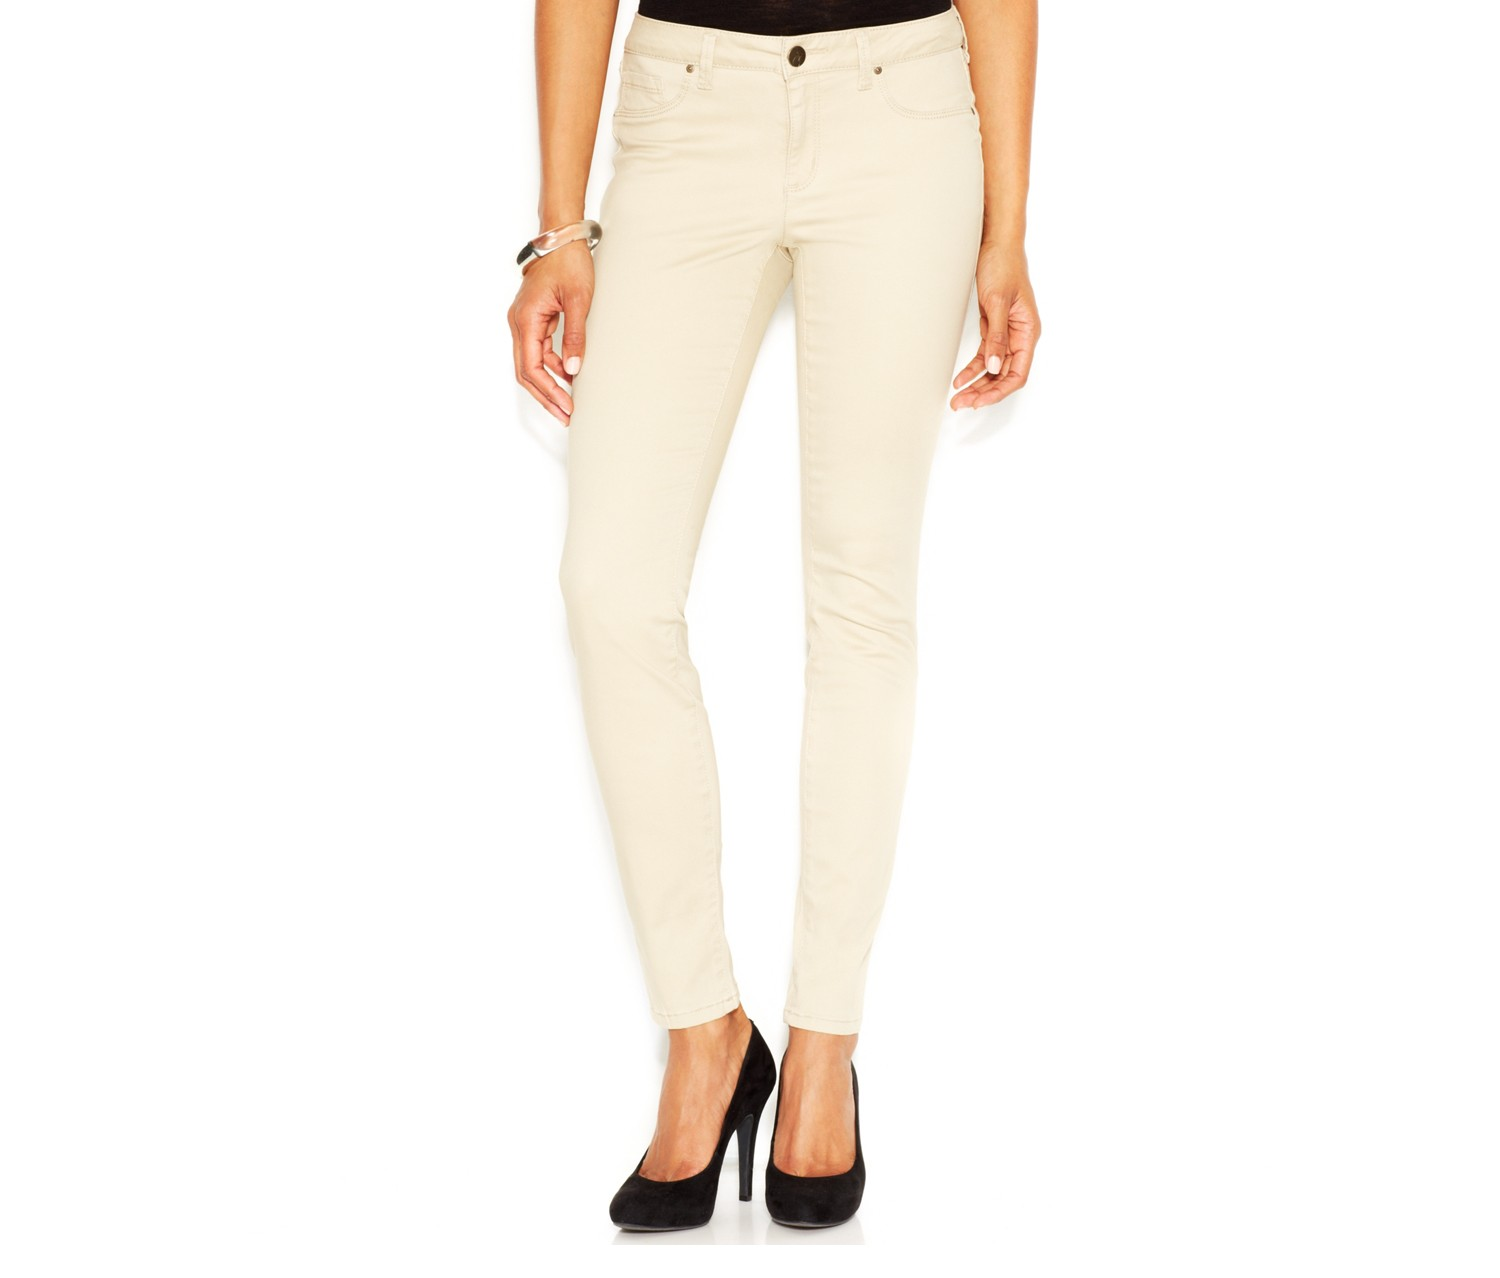 6341868251740 Shop Jessica Simpson Jessica Simpson Kiss Me Sateen Jeggings Pale ...